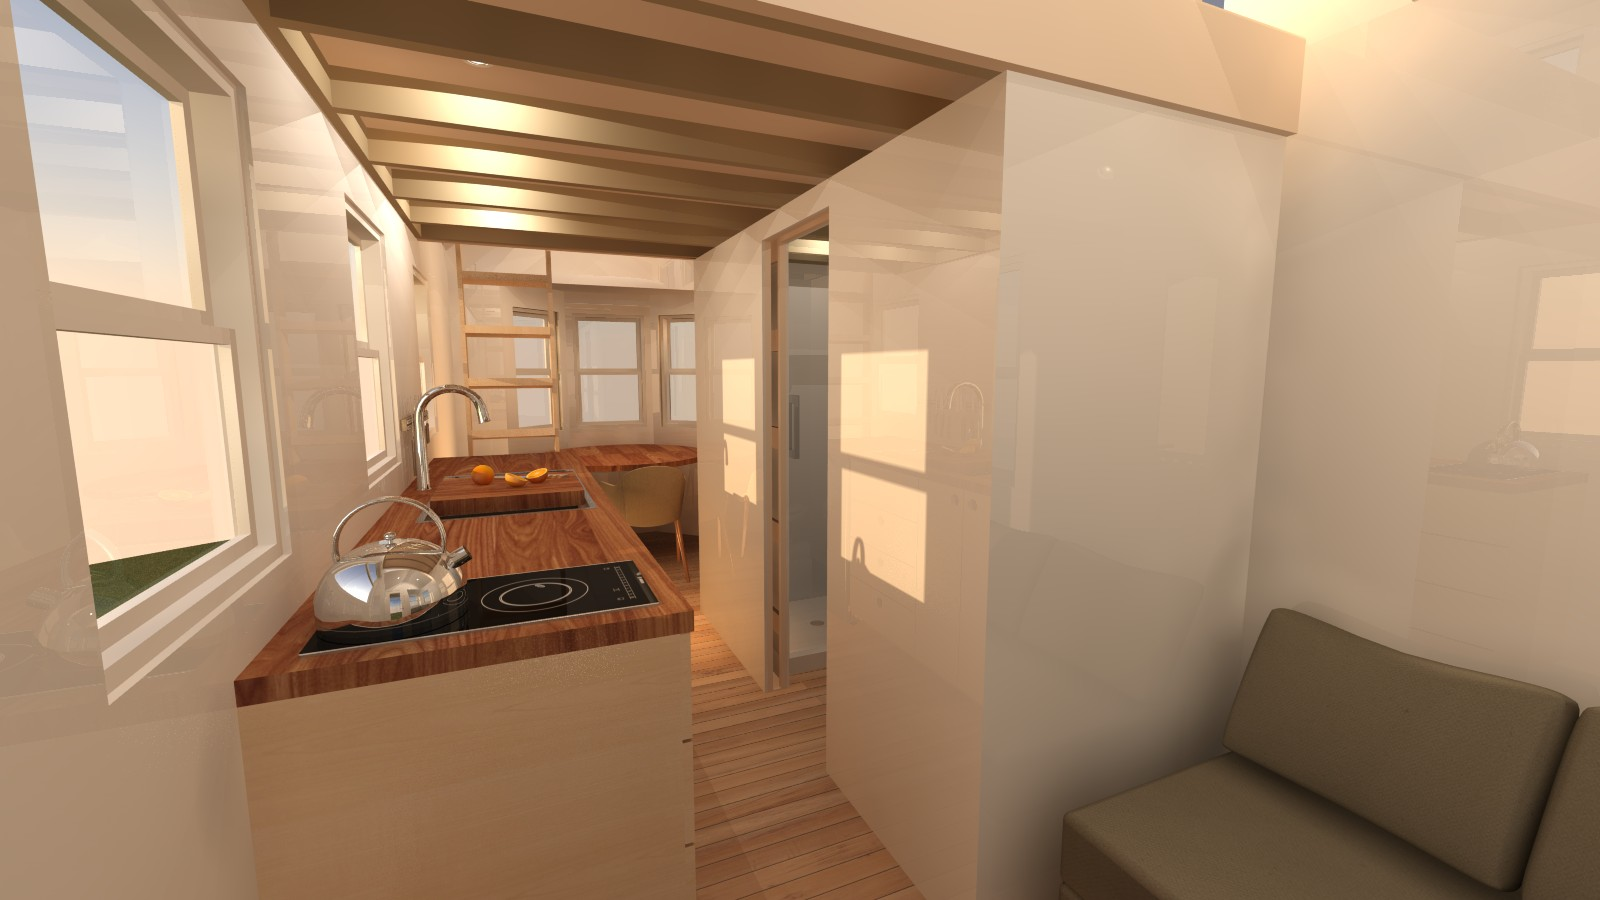 Talmage 20 tiny house plans for Small house interior